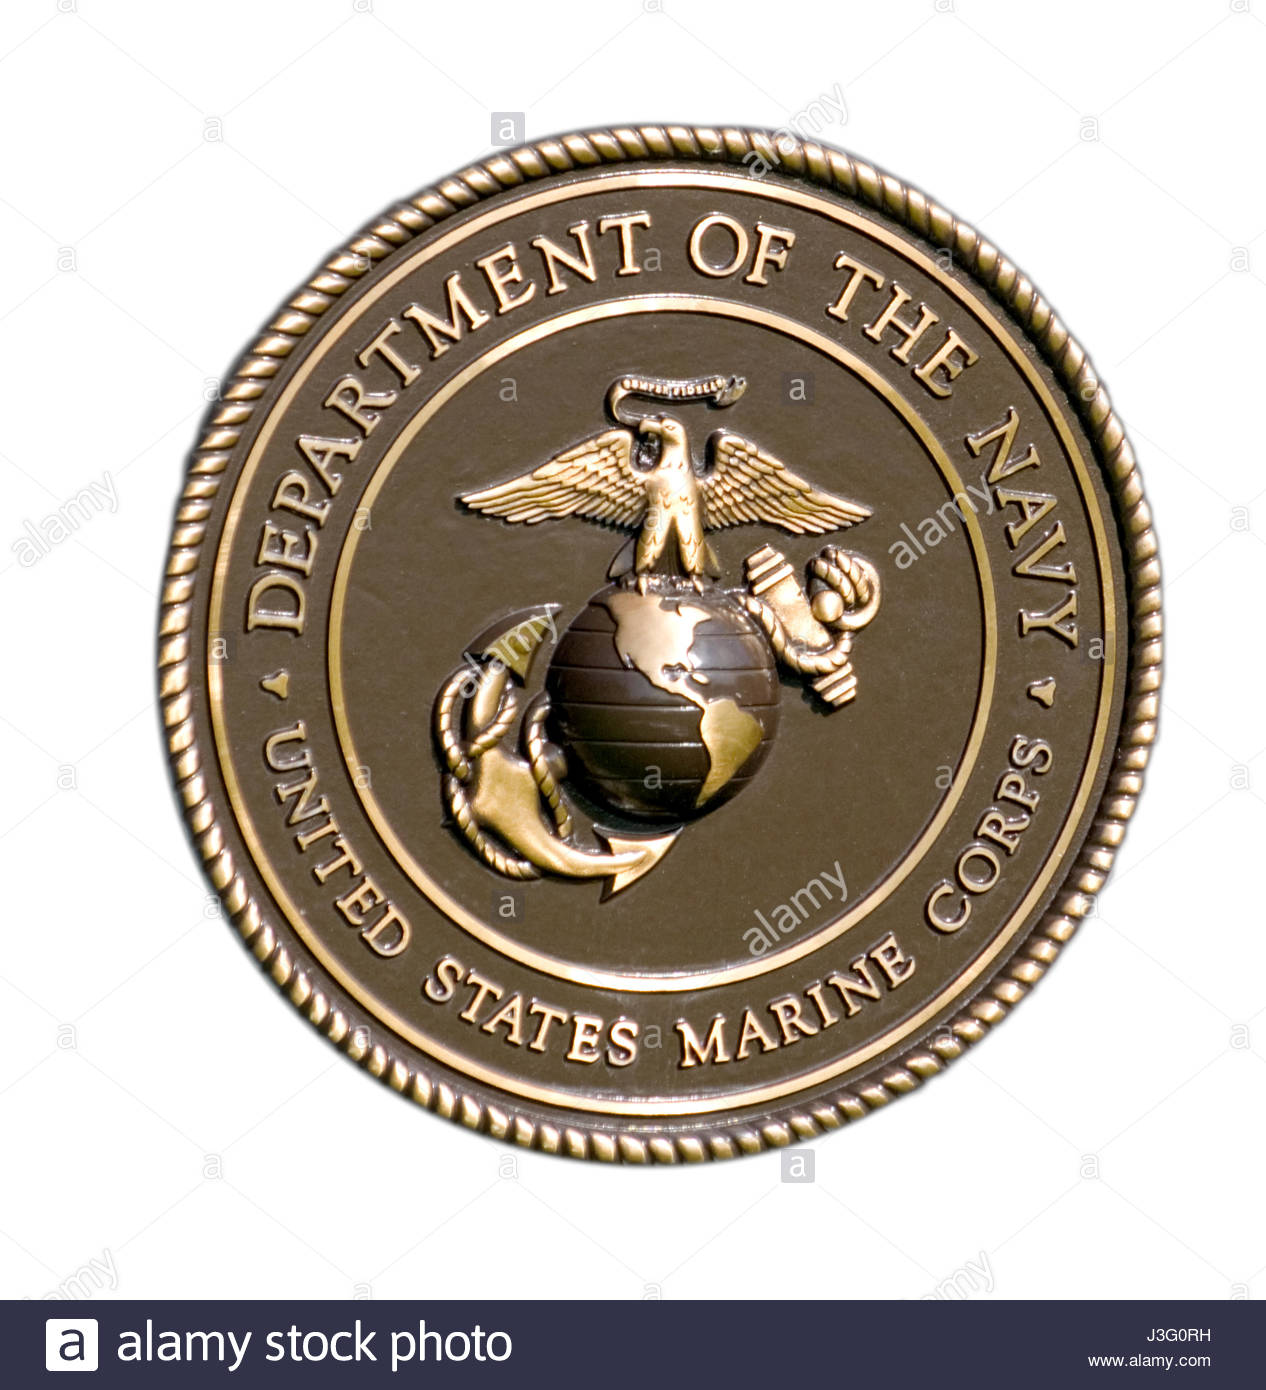 the seal of the united states marine corps department of the navy stock photo 139878805 alamy. Black Bedroom Furniture Sets. Home Design Ideas